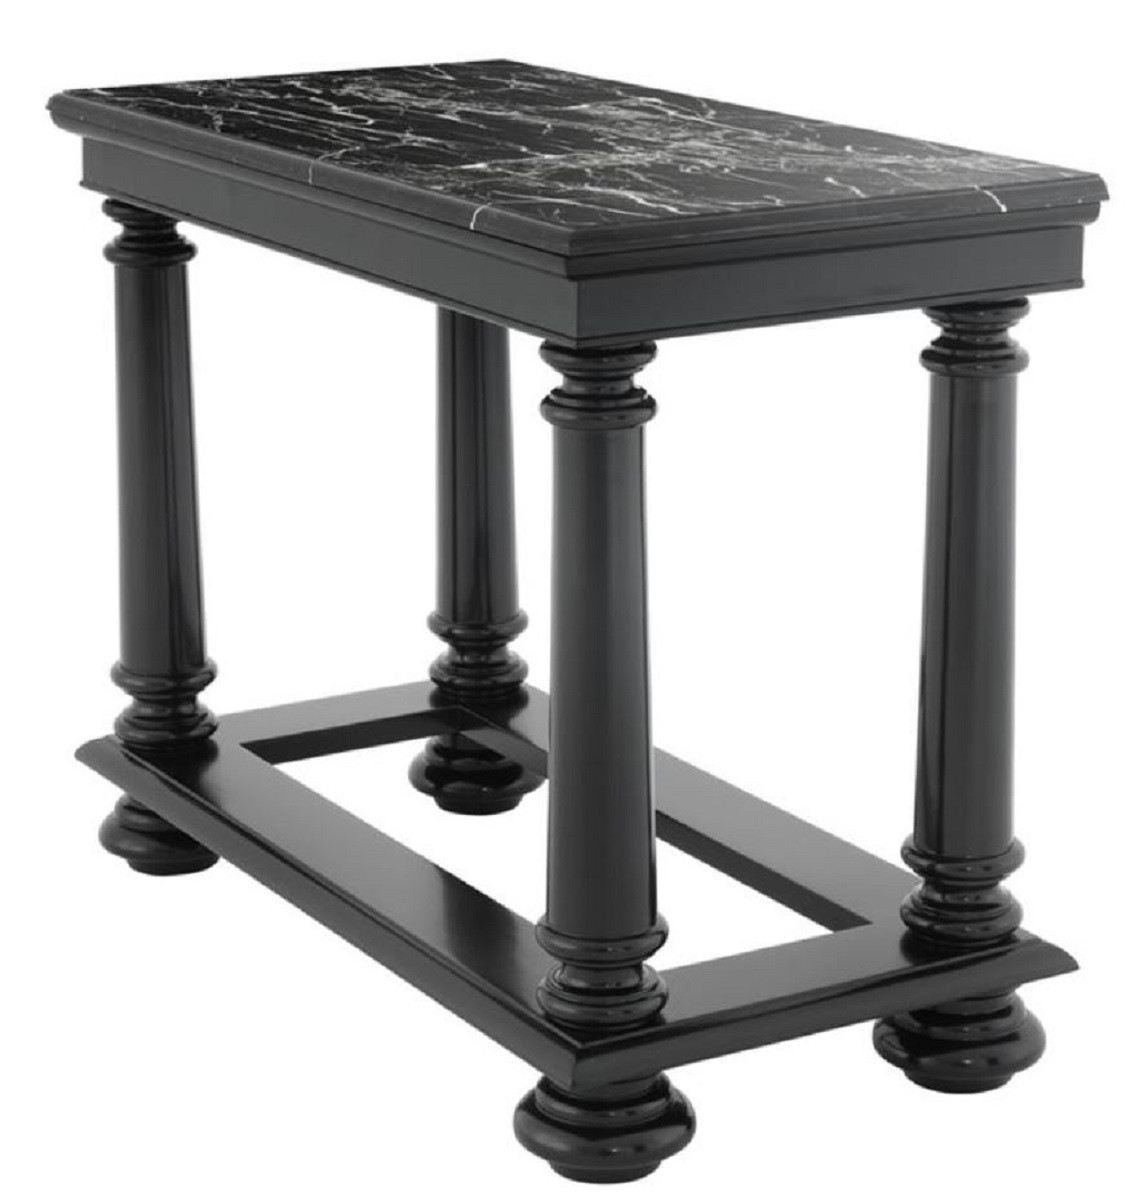 Konsolentisch Schwarz Casa Padrino Luxury Console Table In Black With Black Marble Top